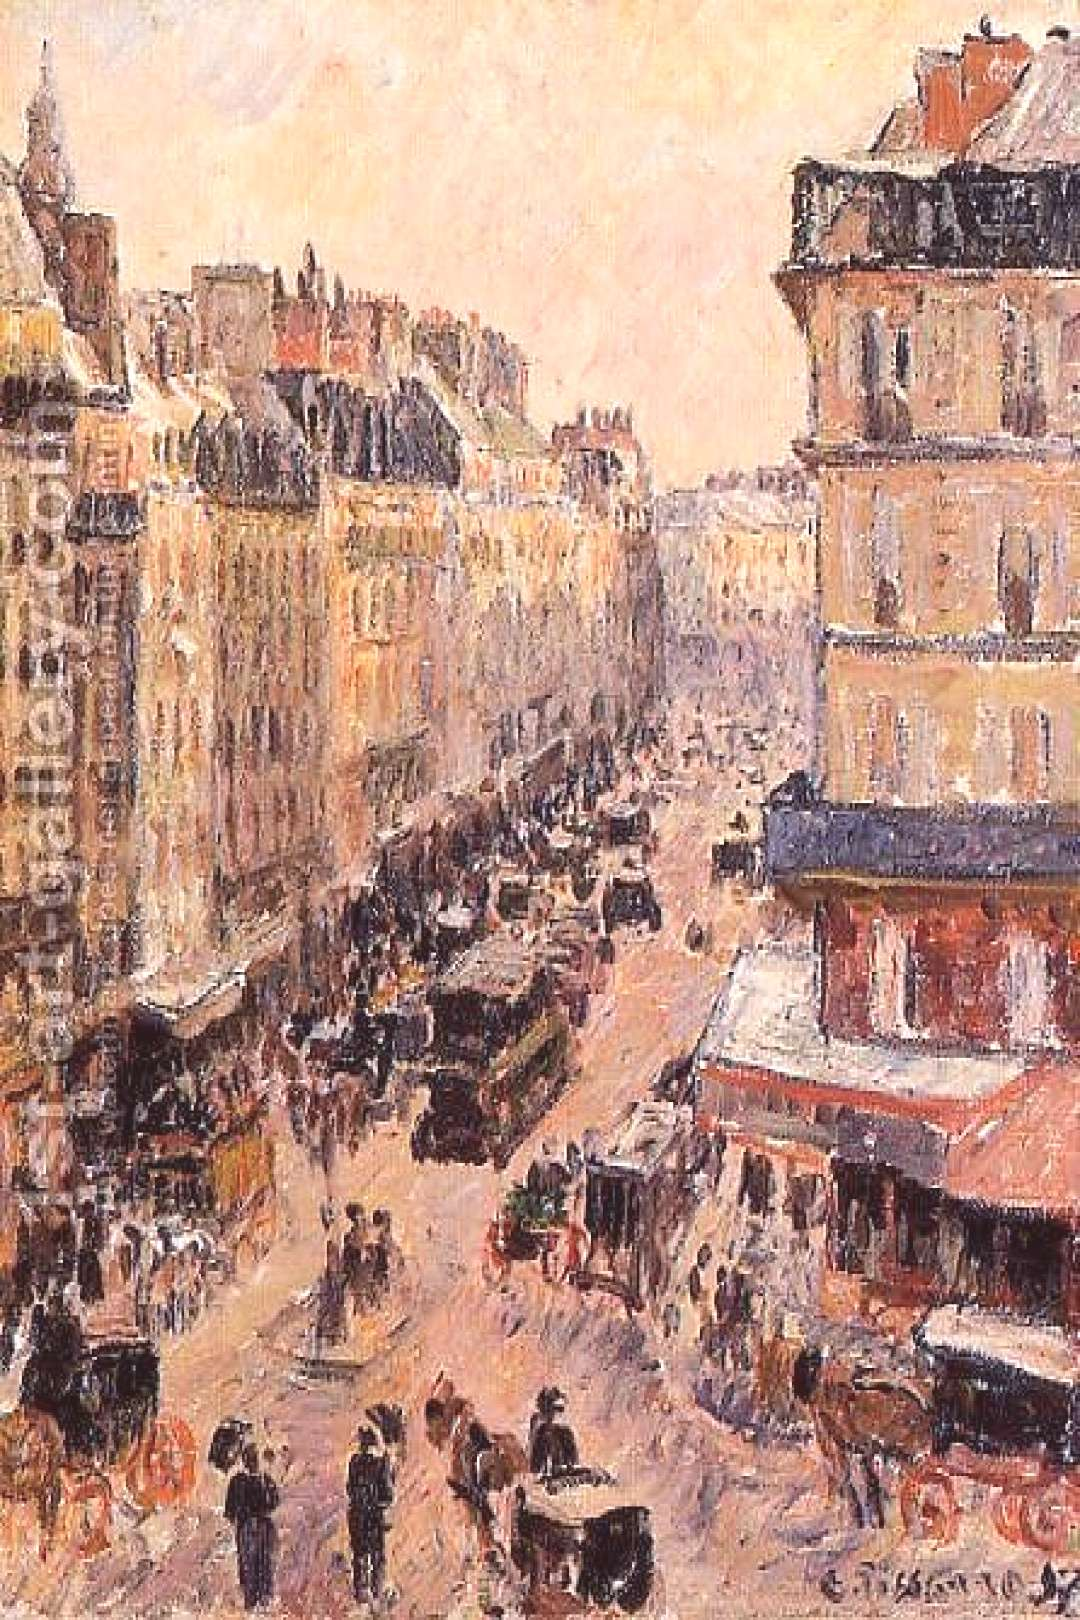 Rue Saint-Lazare Painting by Camille Pissarro Reproduction | 1st Art Gallery